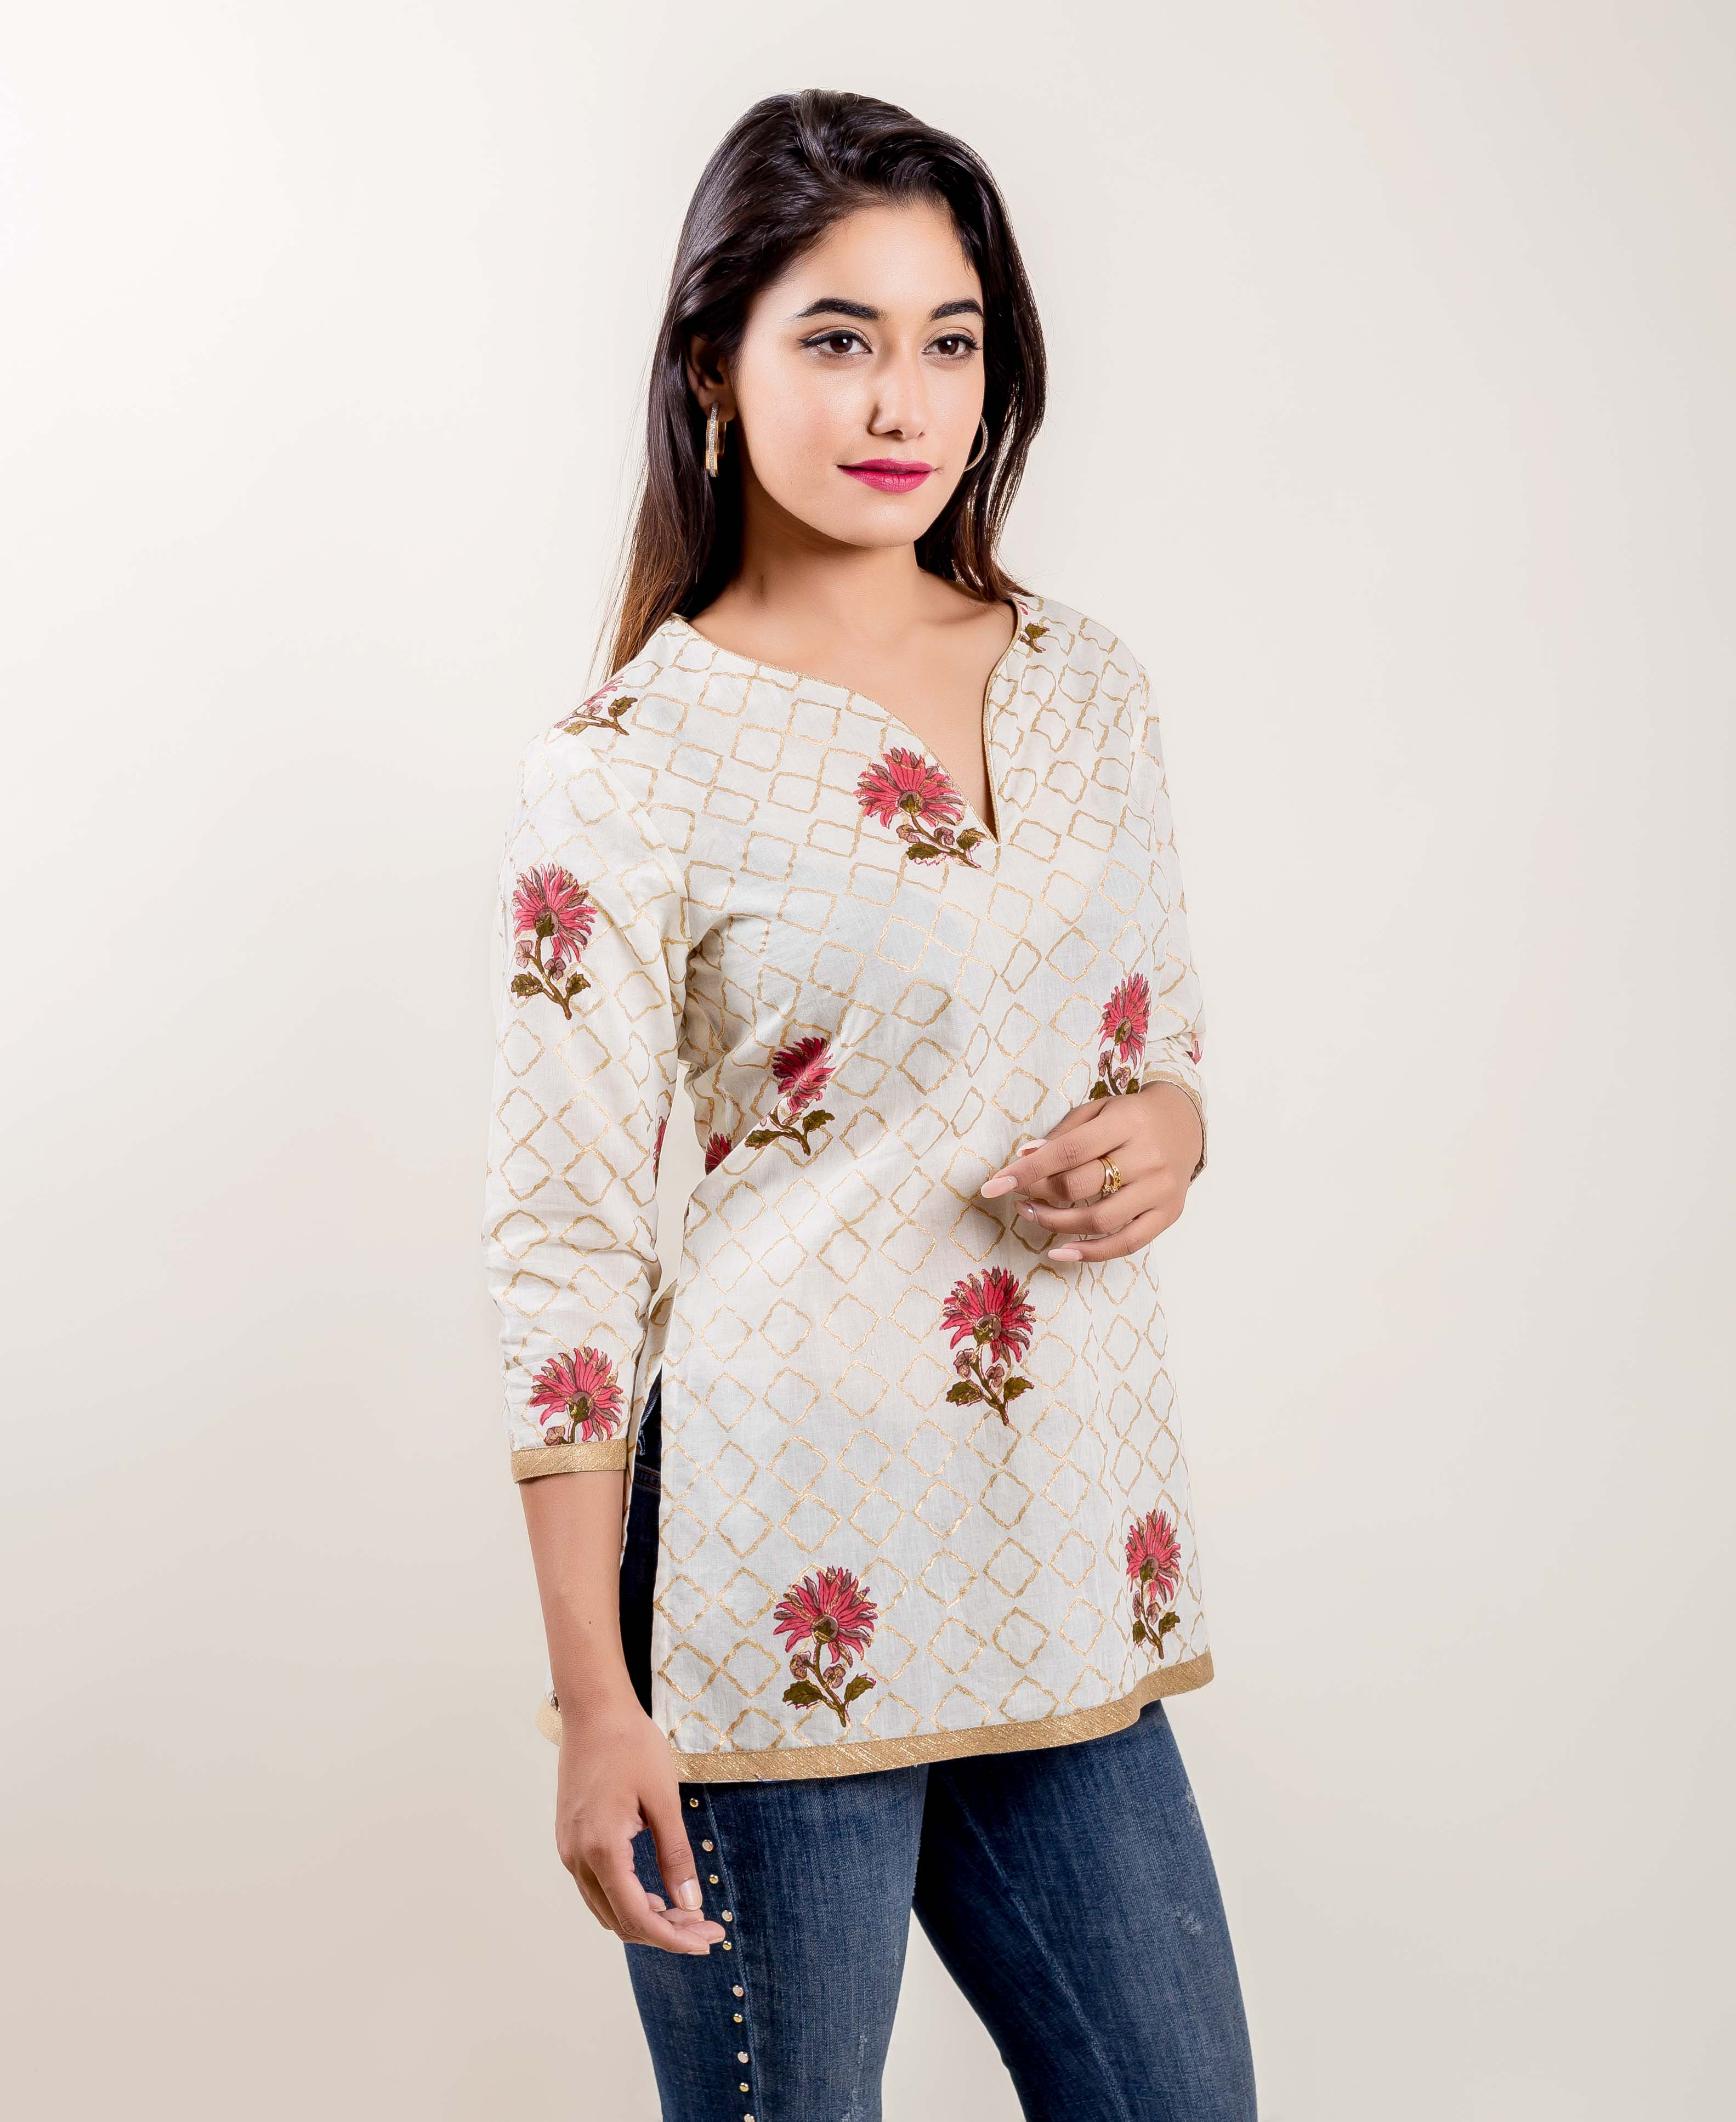 Fancy Floral Printed Ivory Cotton Top